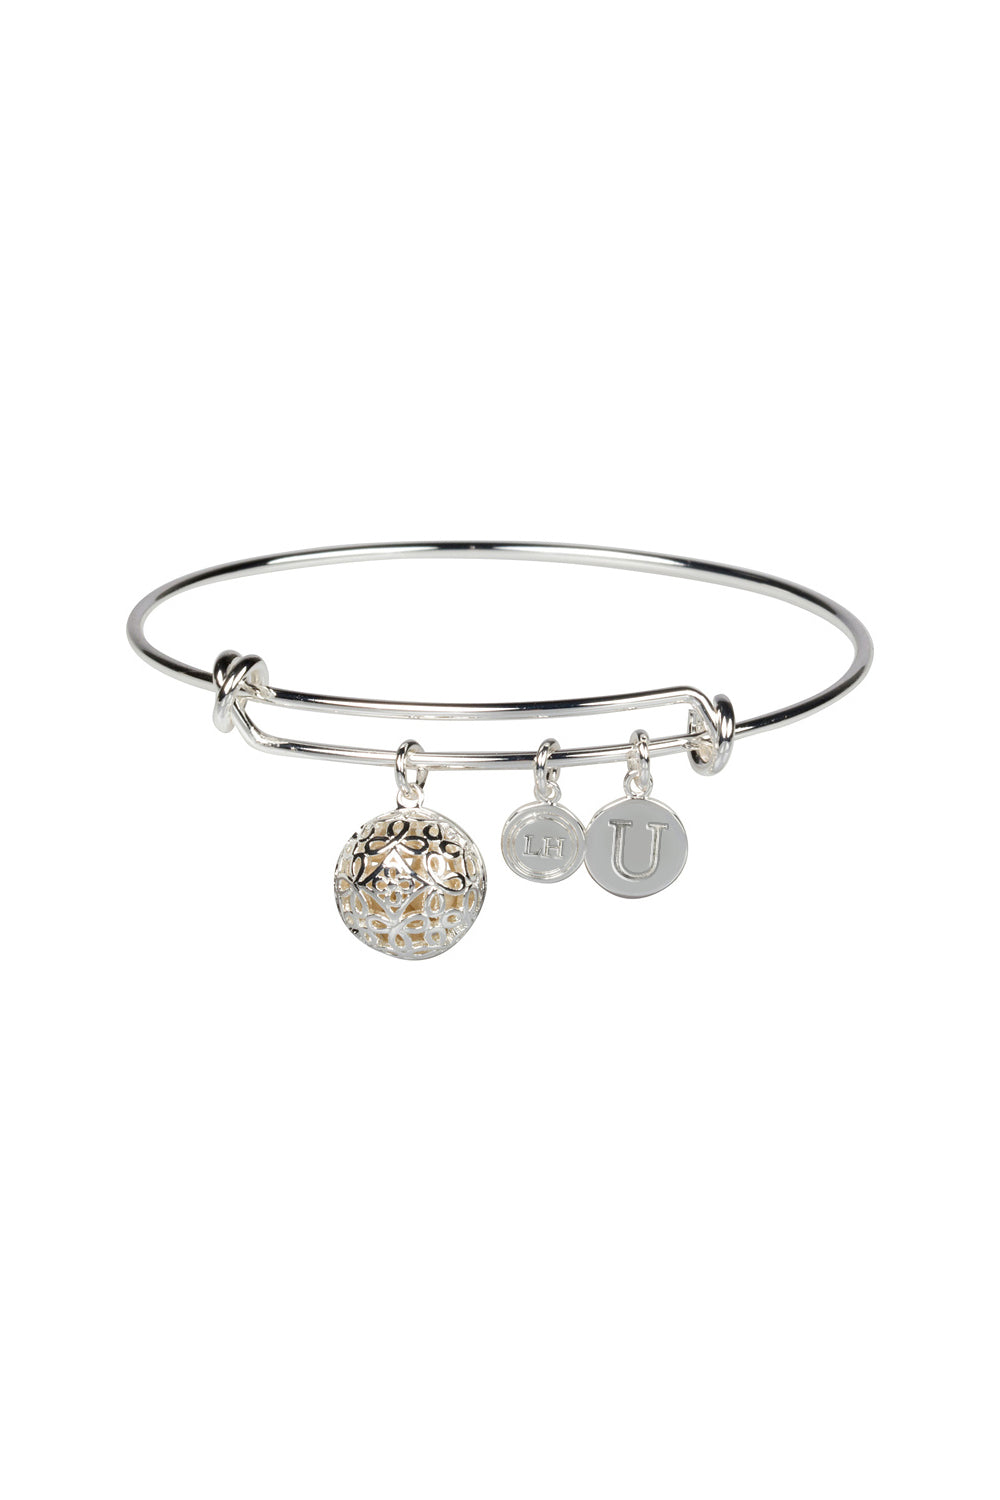 """U"" Initial Fragrance Bangle with Silver Tone Charm"